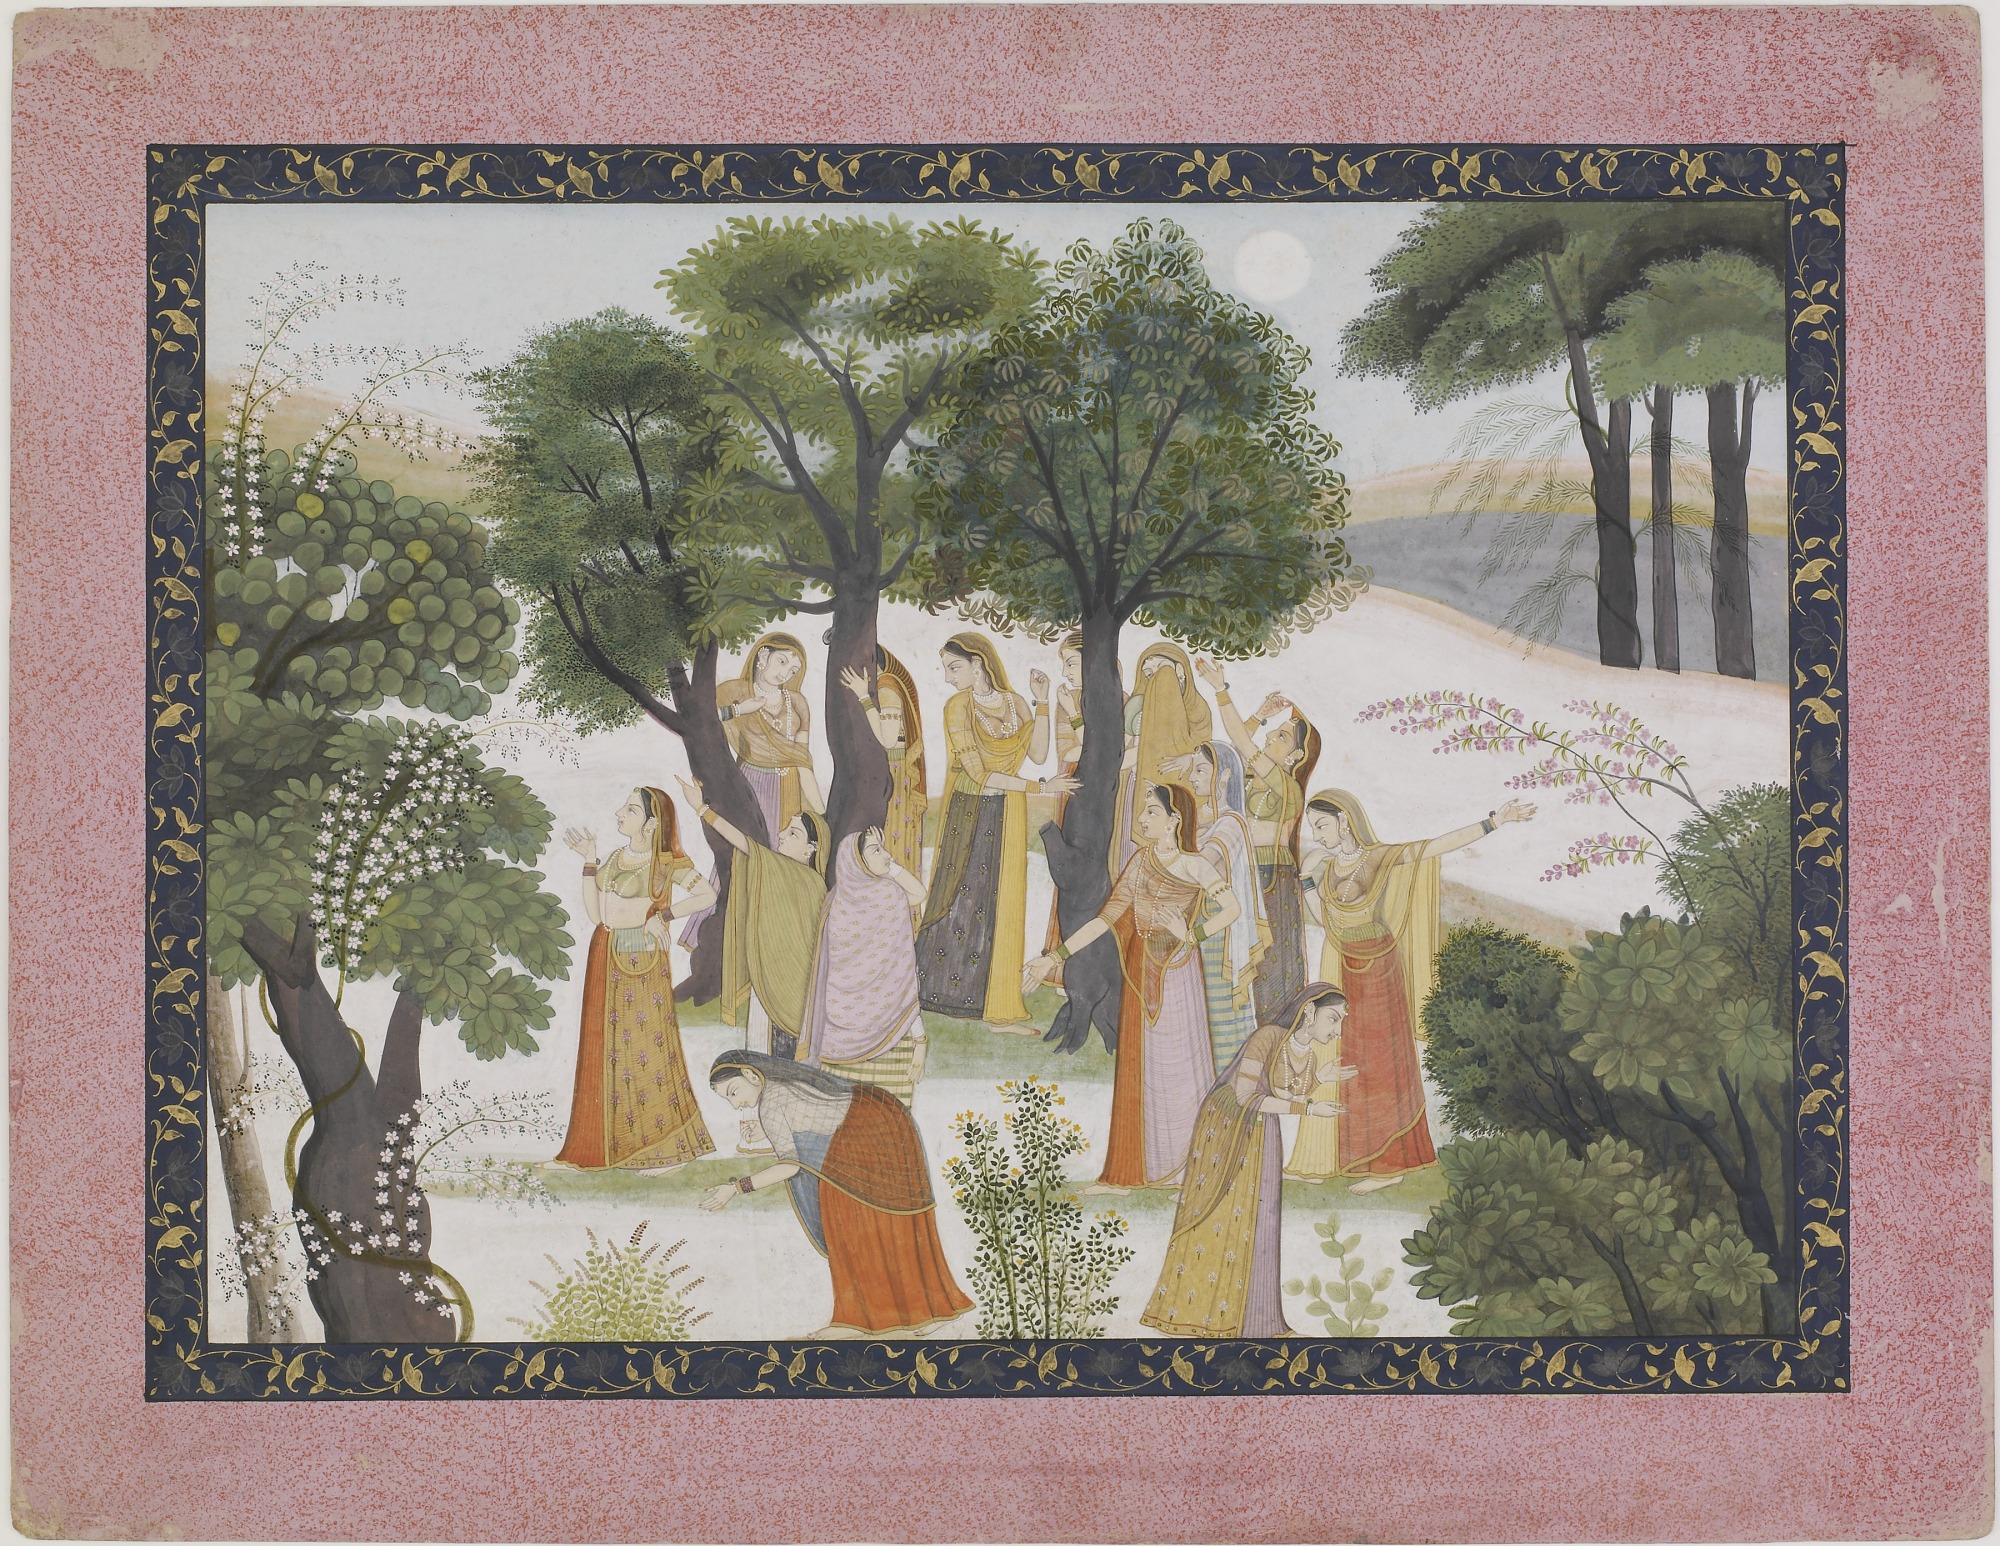 : The Gopis Search for Krishna from a Bhagavata Purana